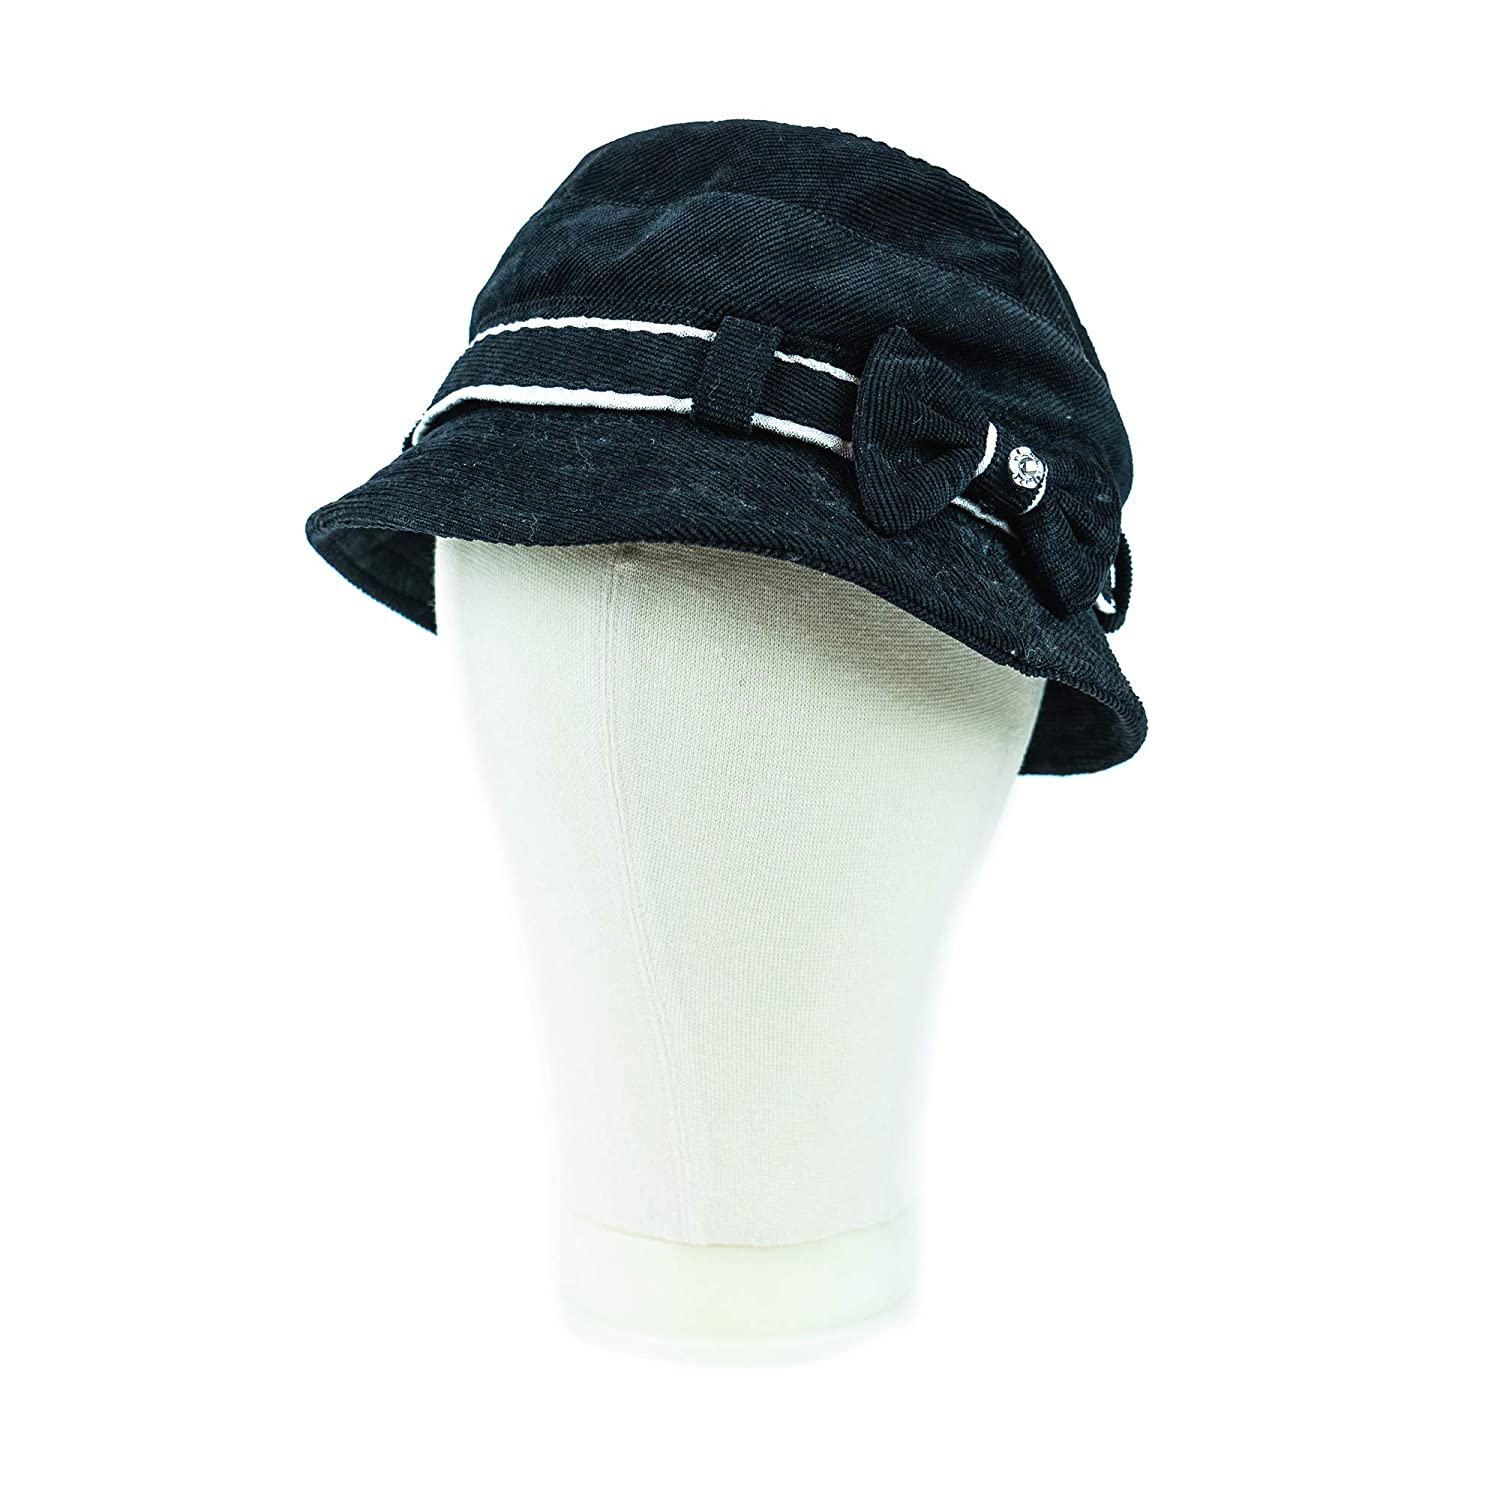 GS FASHION Solid Color Navy Winter Hat Corduroy Cloche Bucket with Bow Accent